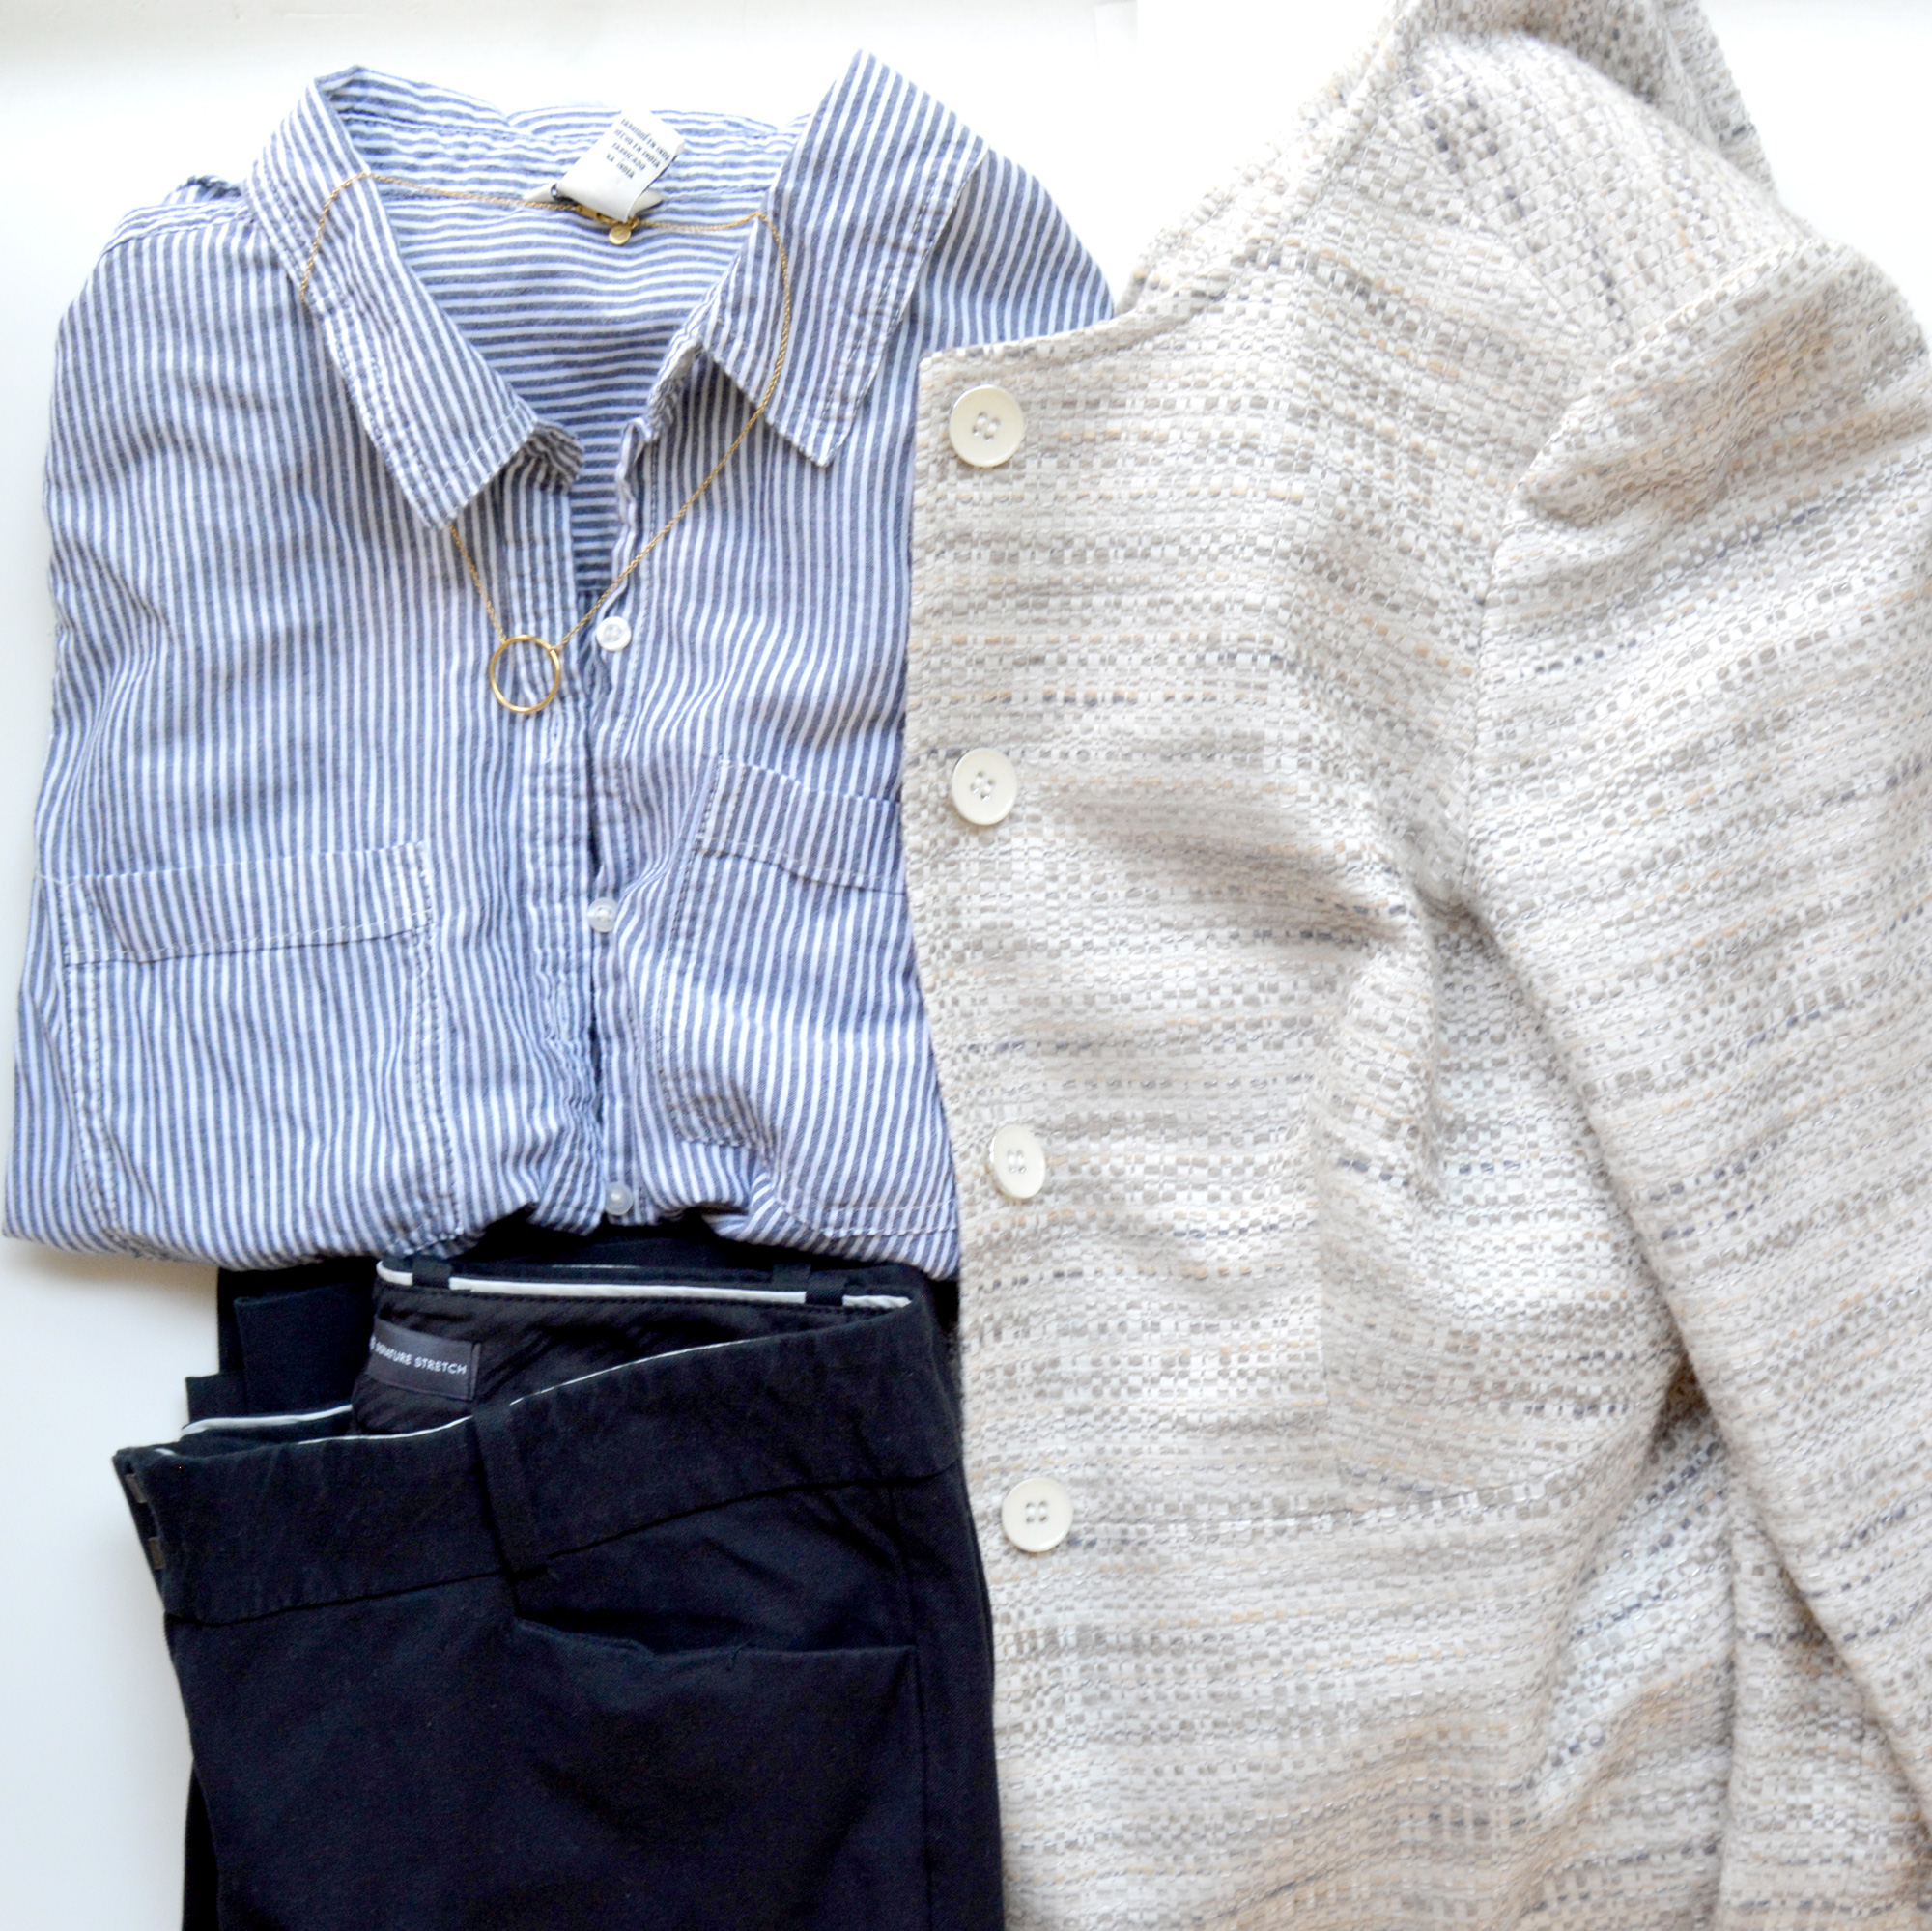 Fall Capsule Work Wardrobe